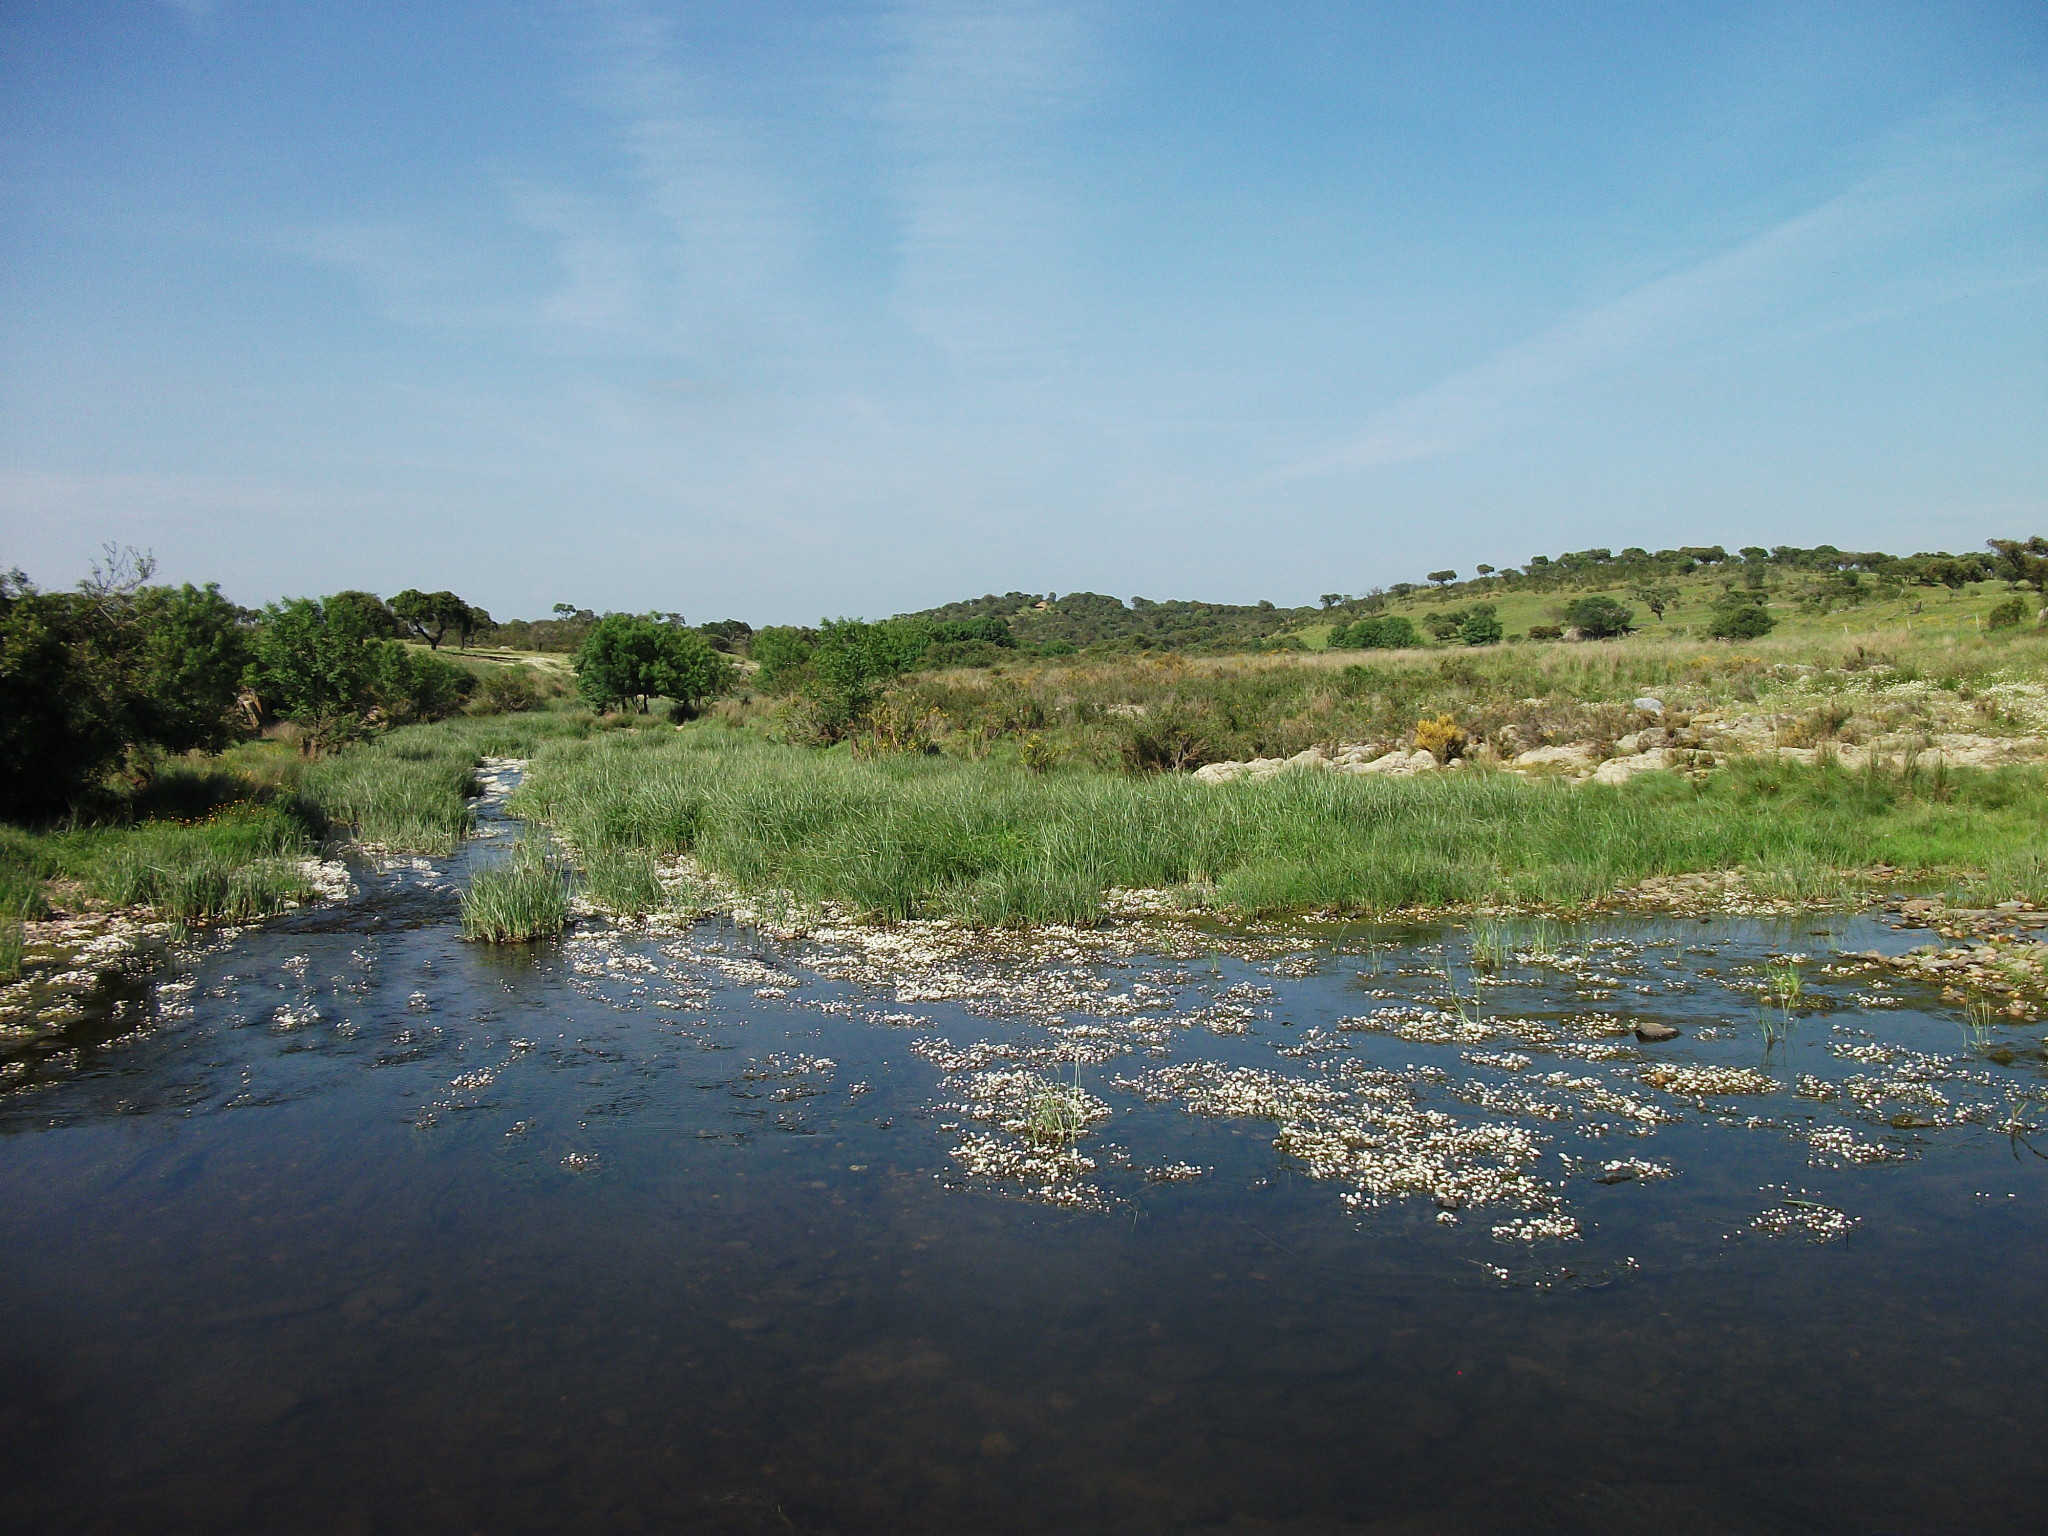 A river in the countryside